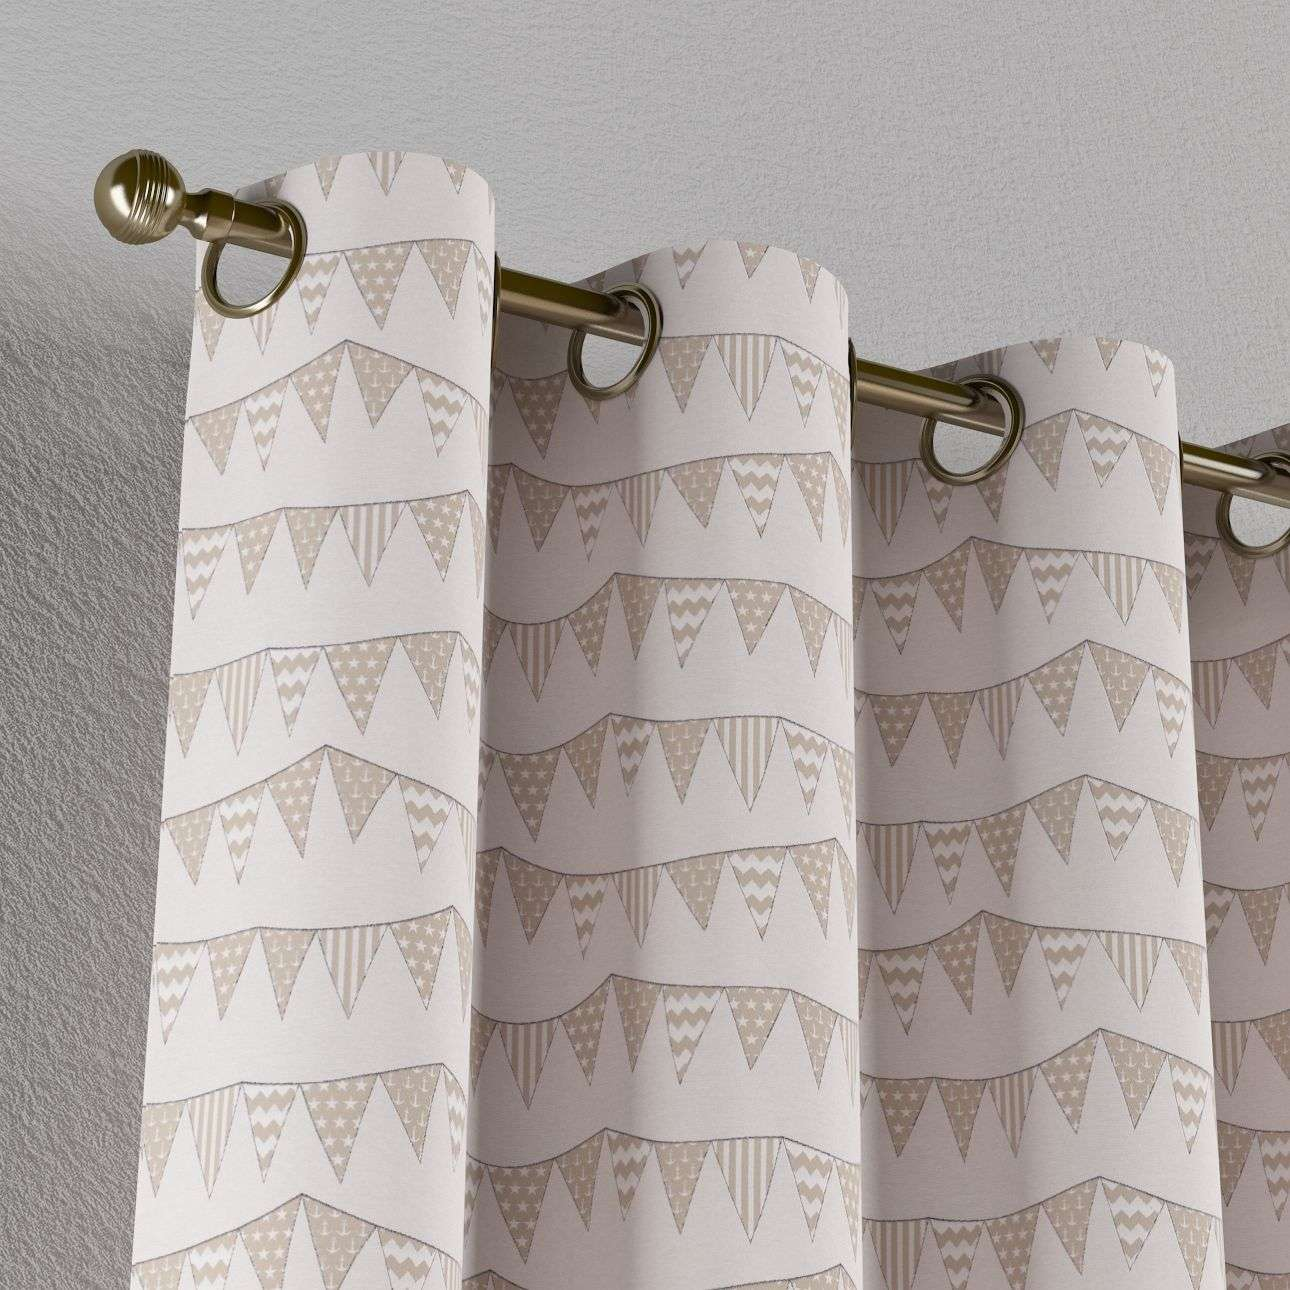 Eyelet curtains in collection SALE, fabric: 140-65